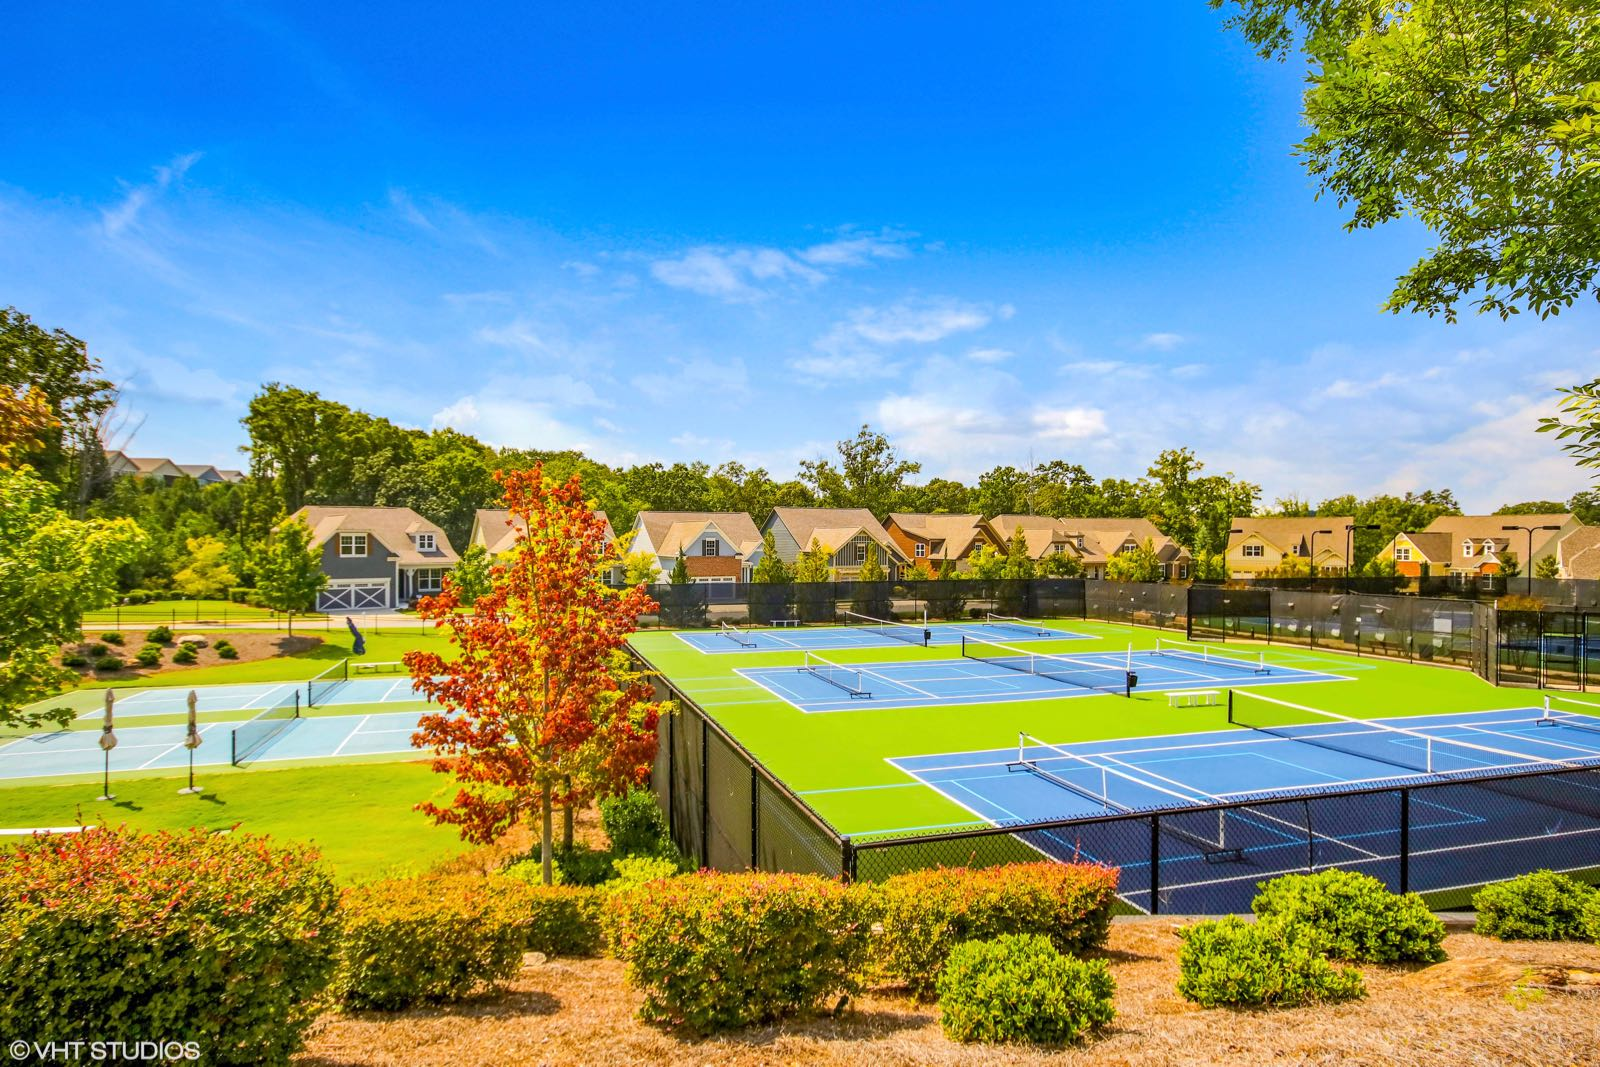 6 Tennis Courts & 2 Pickleball Courts